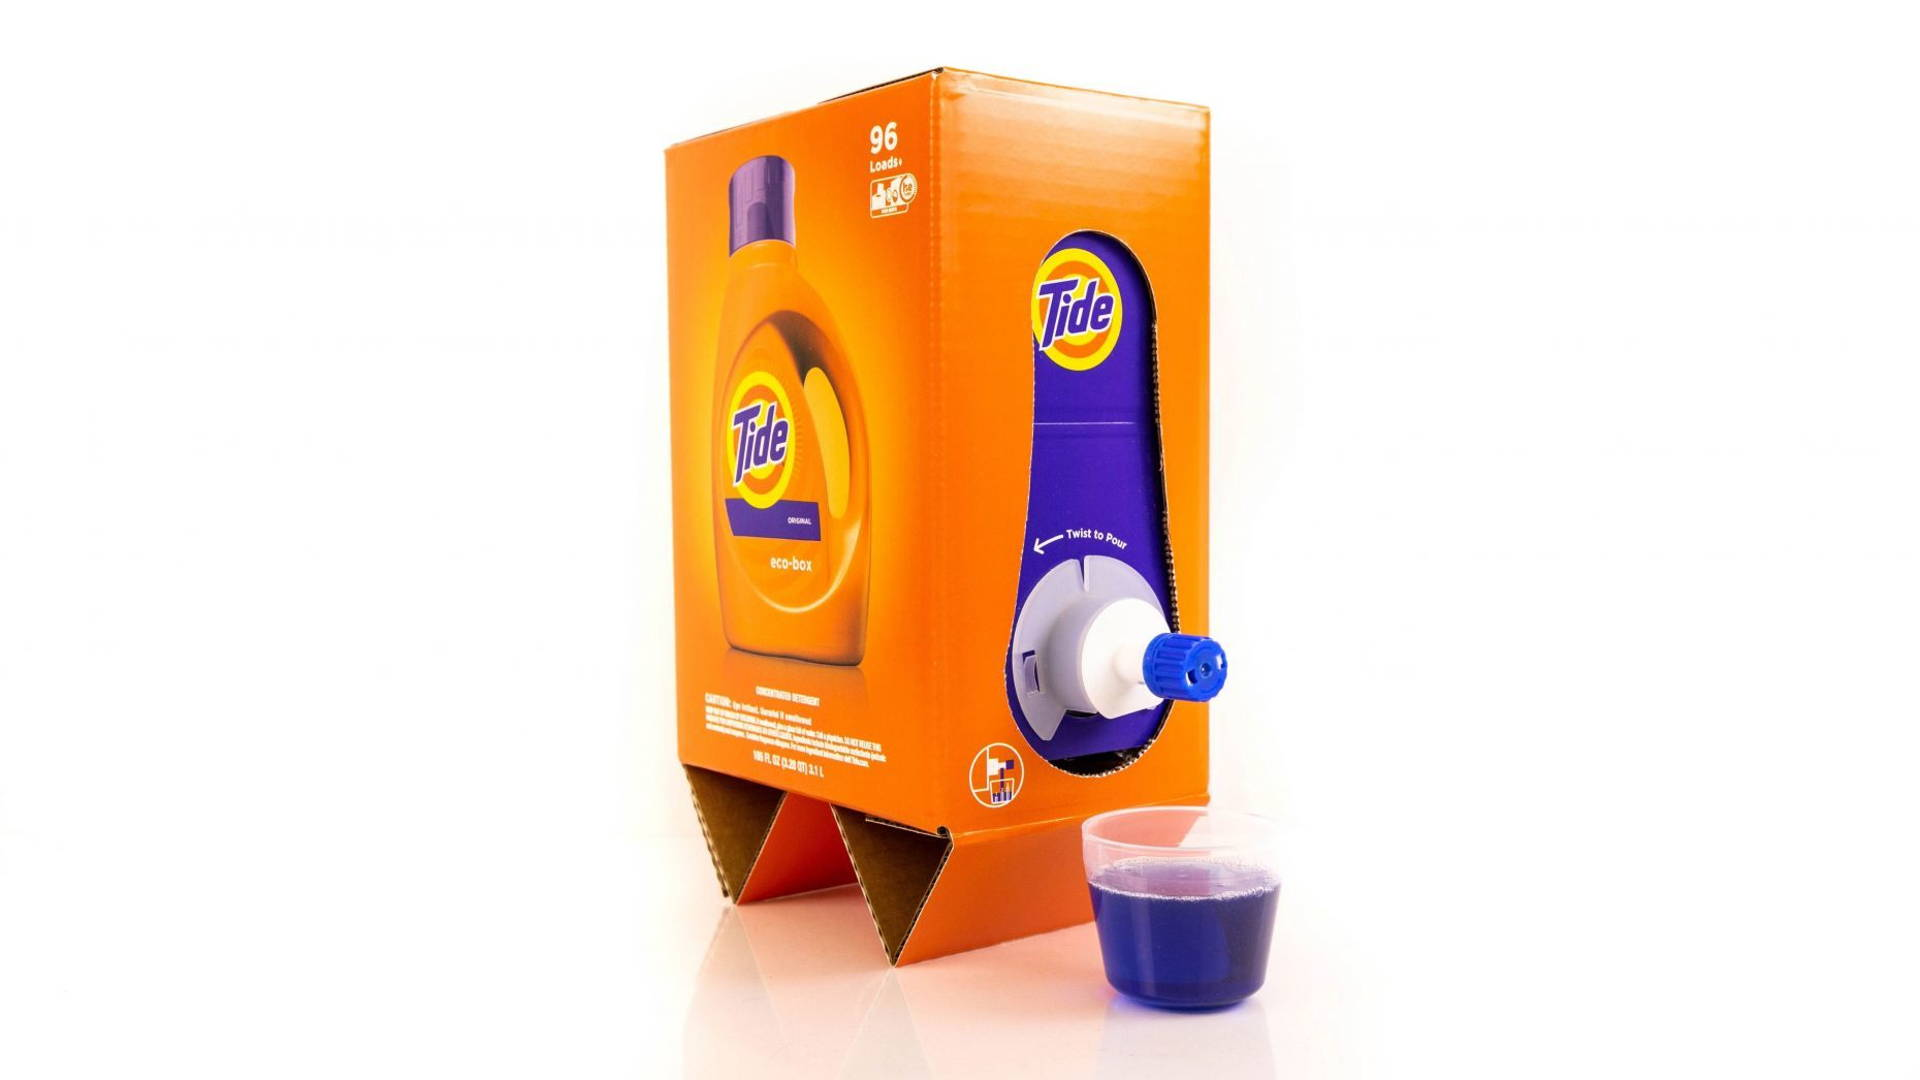 Tide Out Here Making Laundry Detergent Look Like Boxed Wine | Dieline